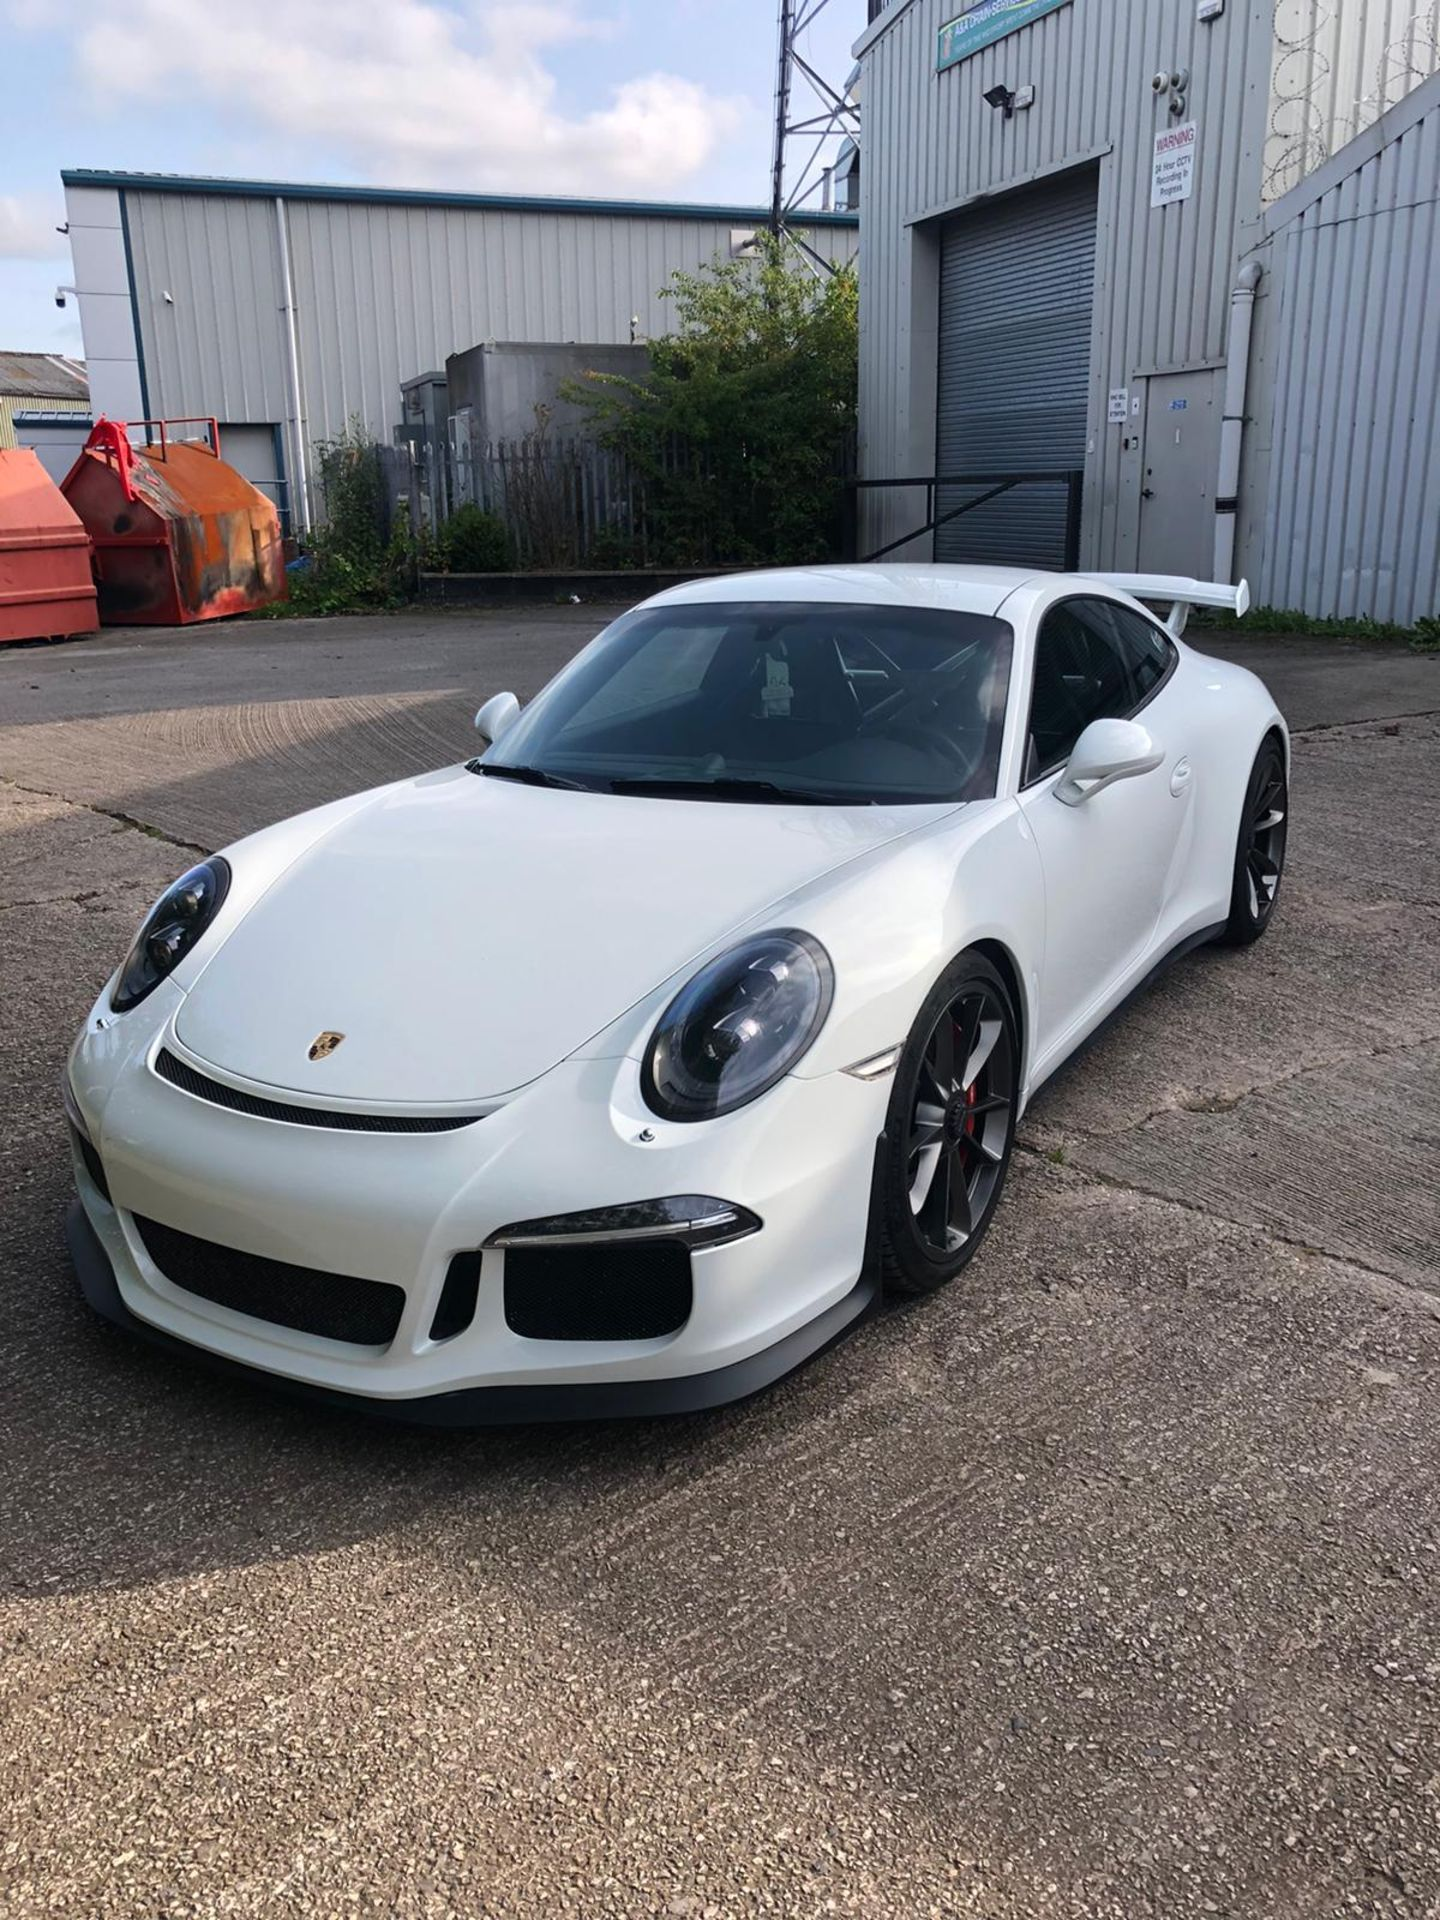 2014 PORSCHE GT3, CLUB SPORT ROLL CAGE, RACE SEATS CARBON KIT, 29,000 MILES, FULL PORSCHE HISTORY - Image 3 of 29